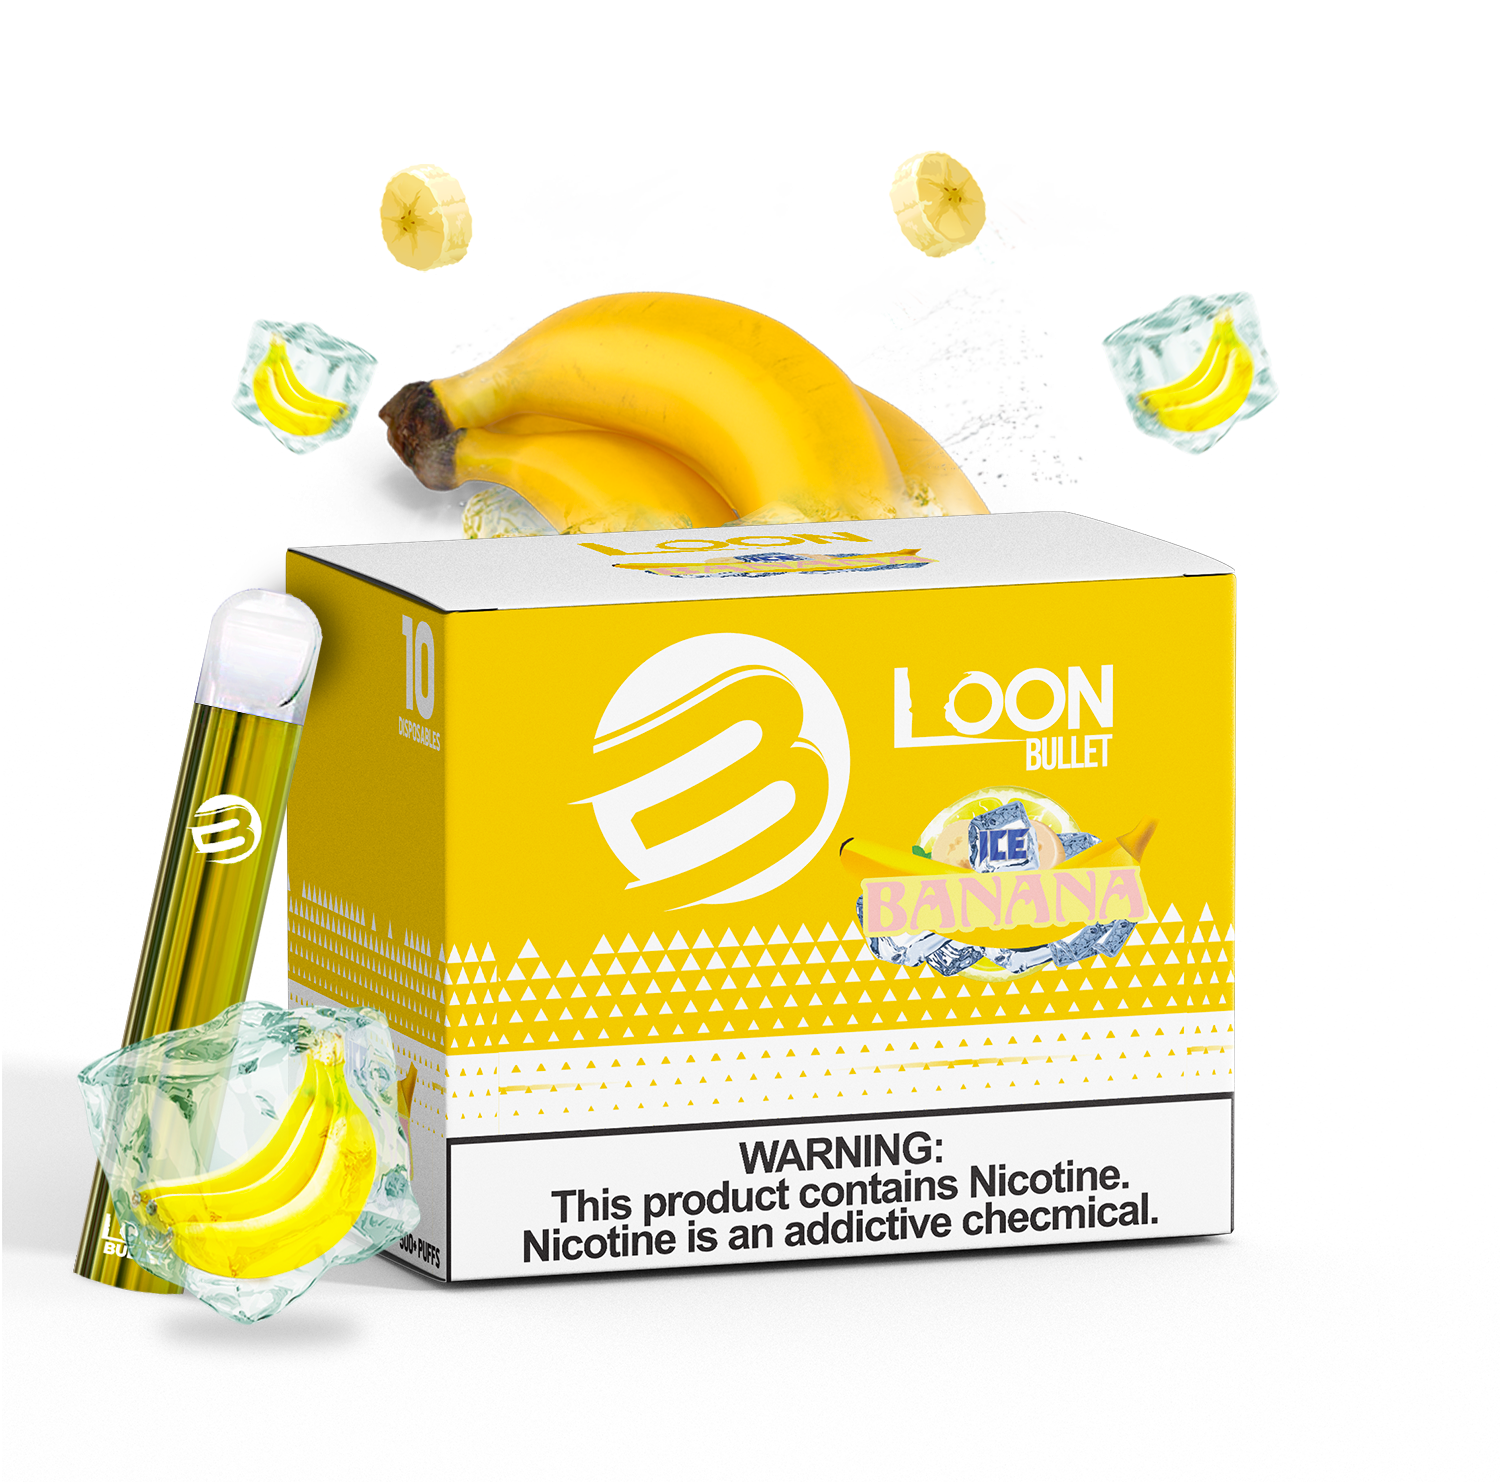 LOON BULLET ICED BANANA 10-PACK - The Loon Wholesale